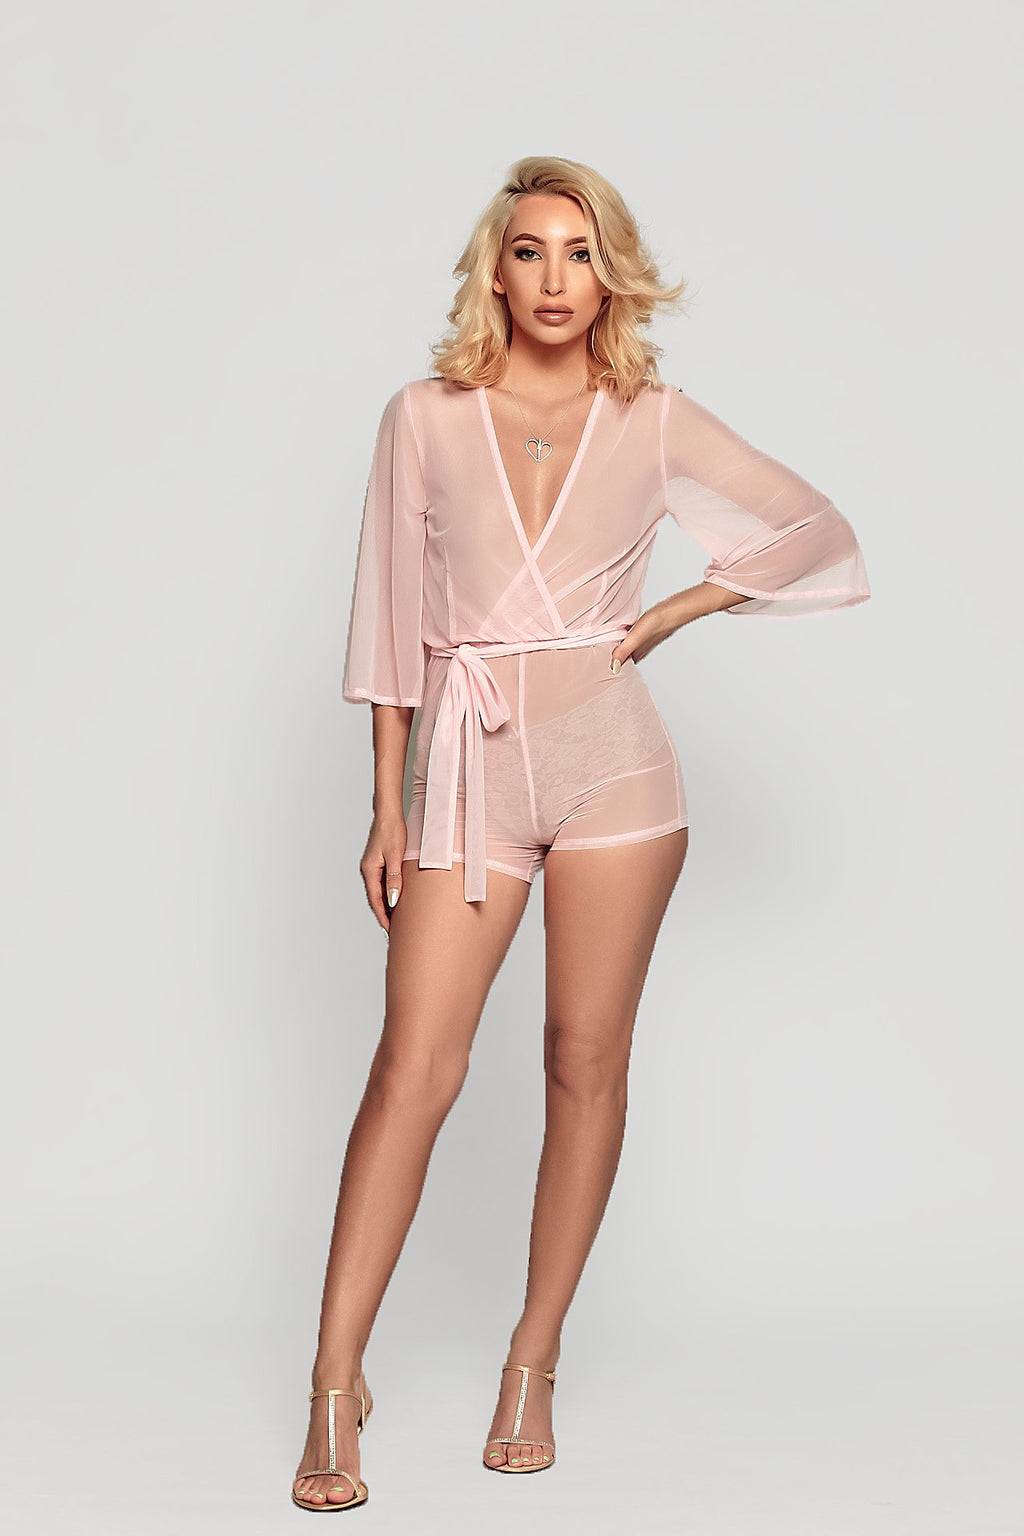 EVA MESH ROMPER - Baby Pink available soon